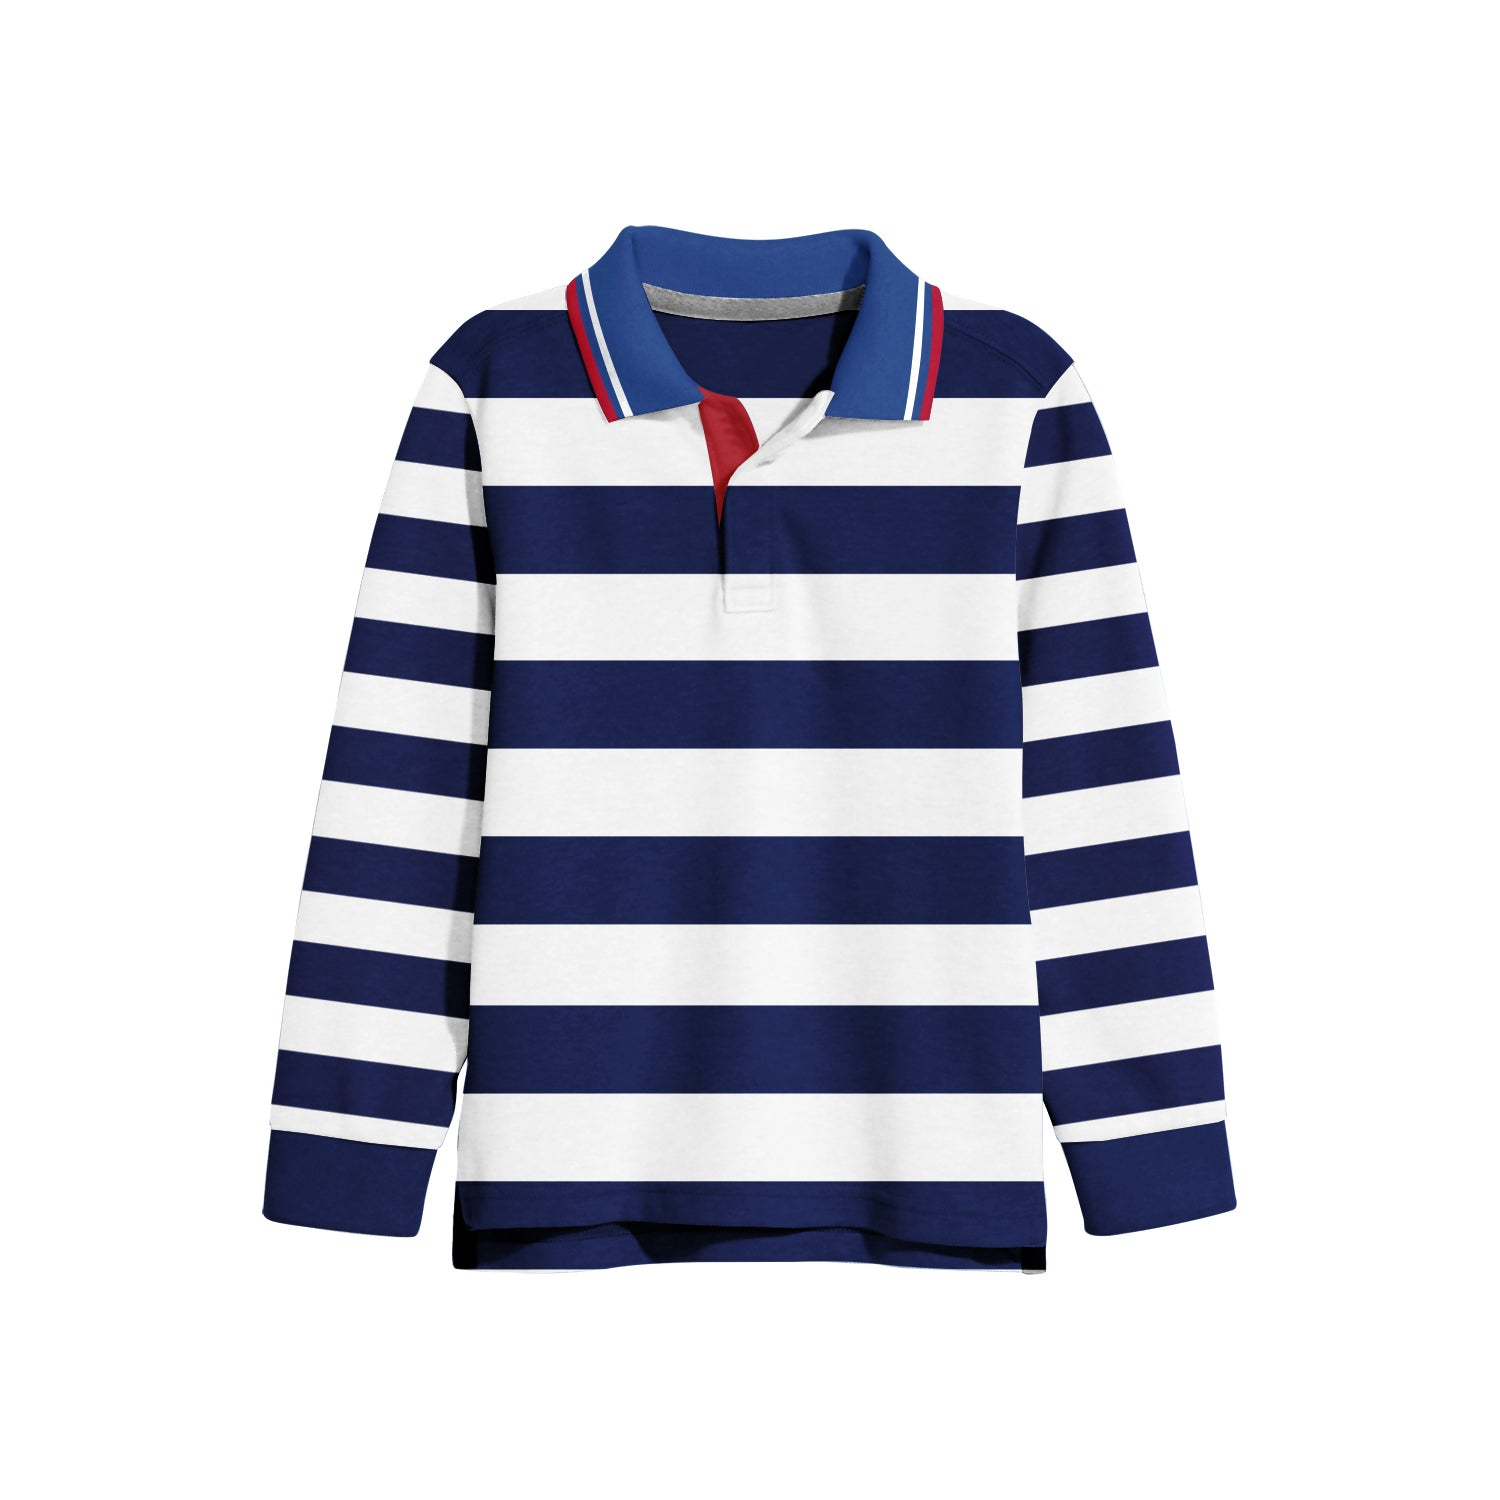 NEXT Single Jersey Polo Shirt For Kids-Navy with White Stripe-BE9360